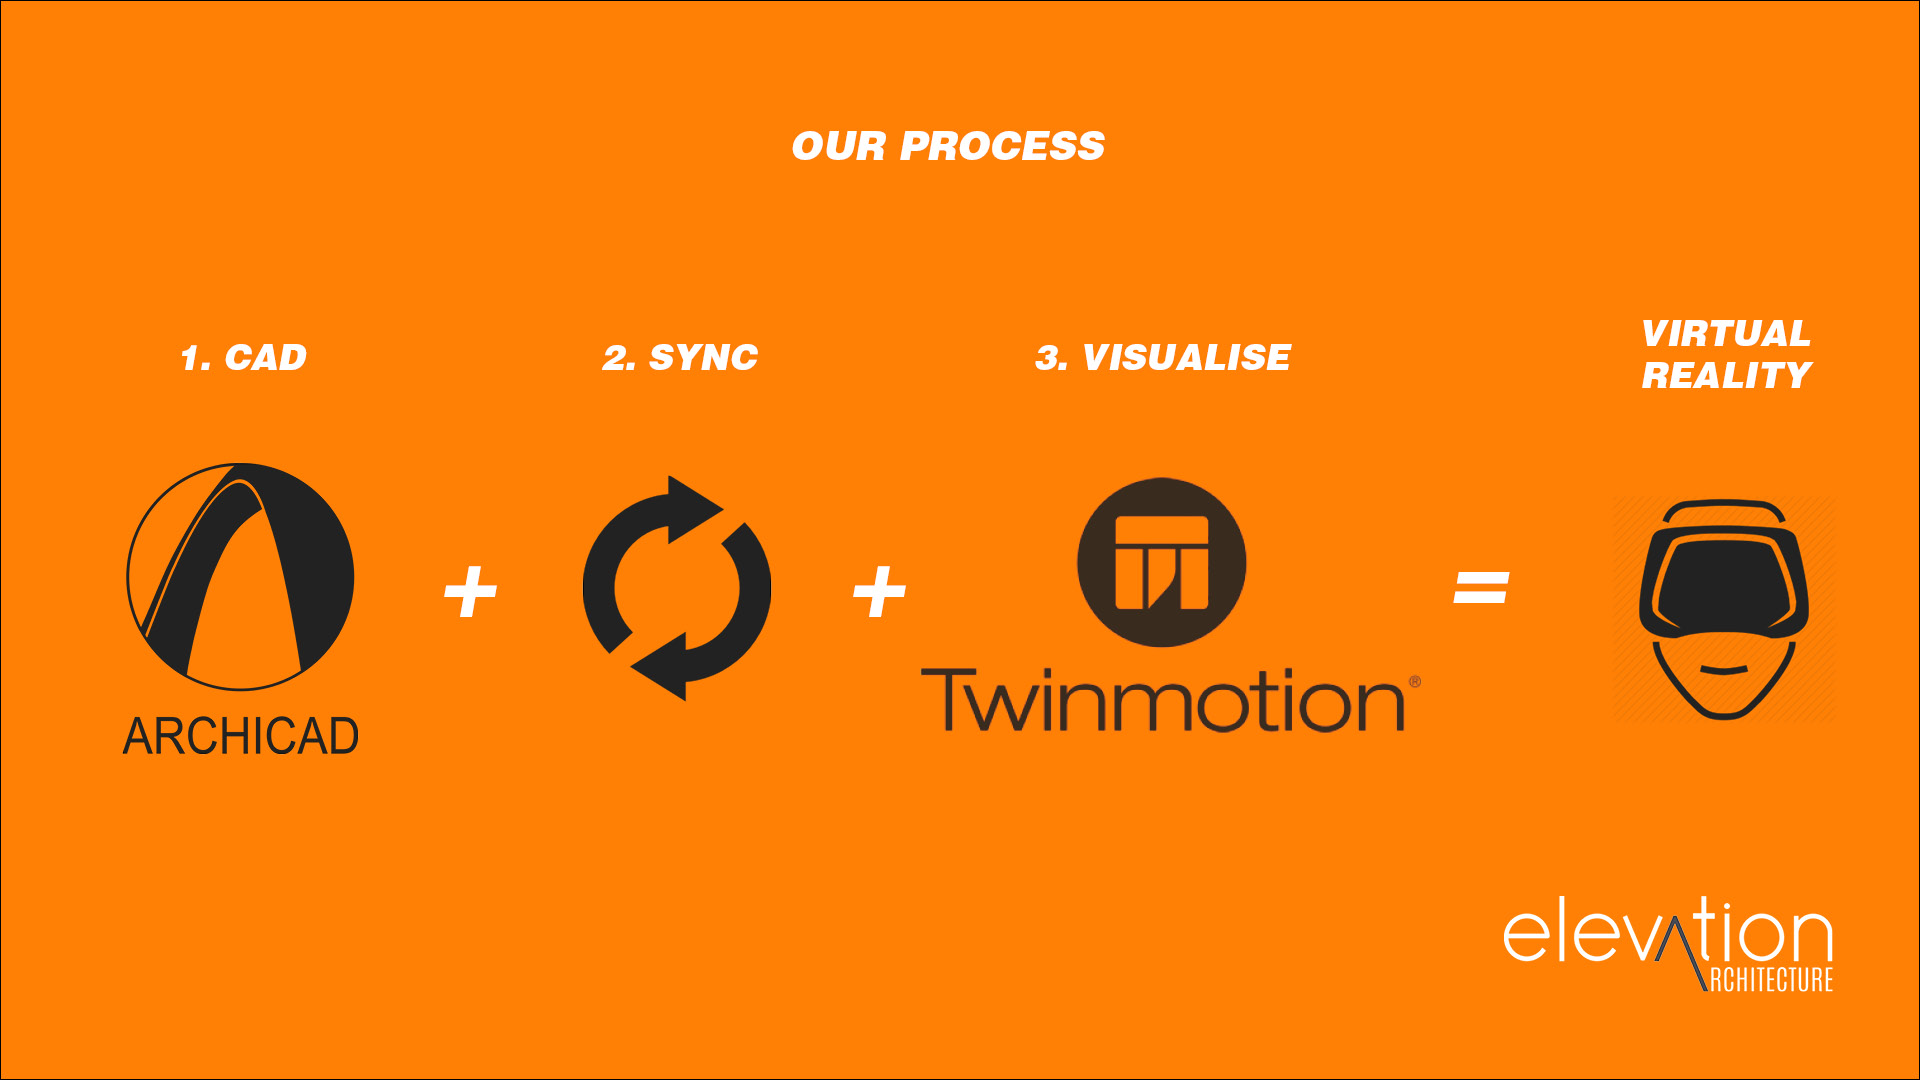 Brisbane architectural firm elevation architecture's use of archicad twinmotion plugin is a 'win-win' for business and its clients